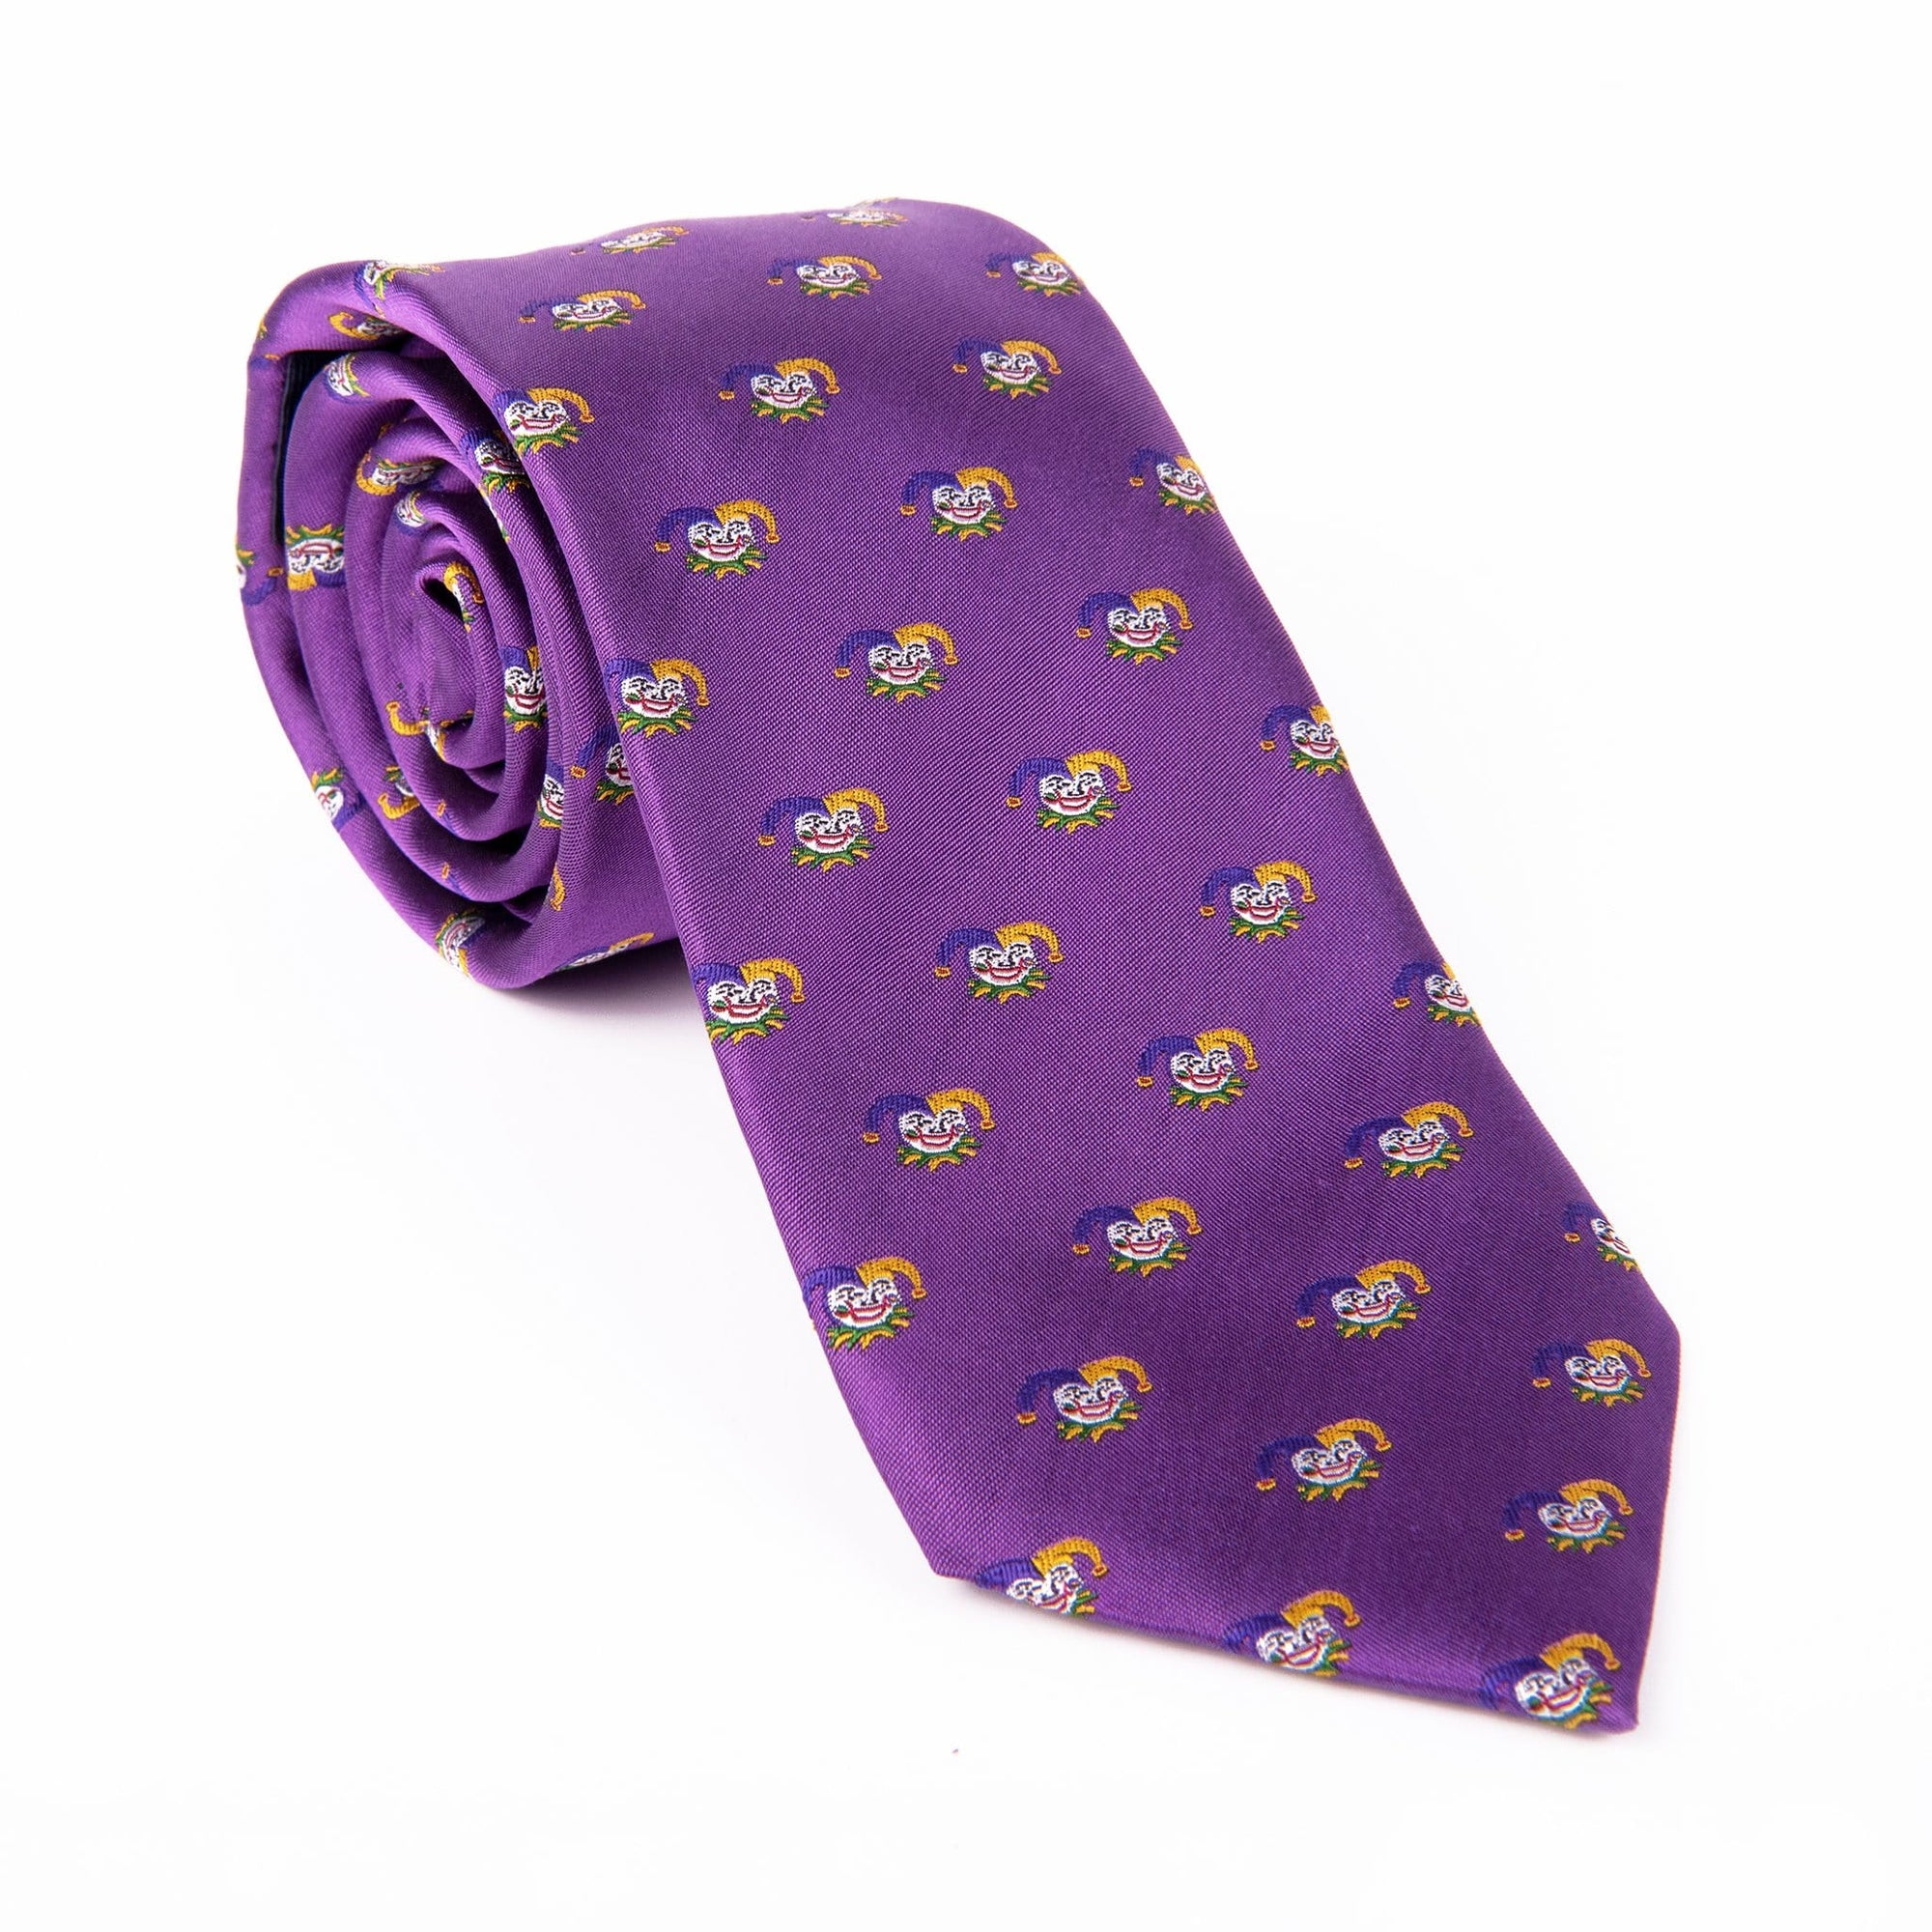 Purple Mardi Gras Jester Tie - Haspel Clothing